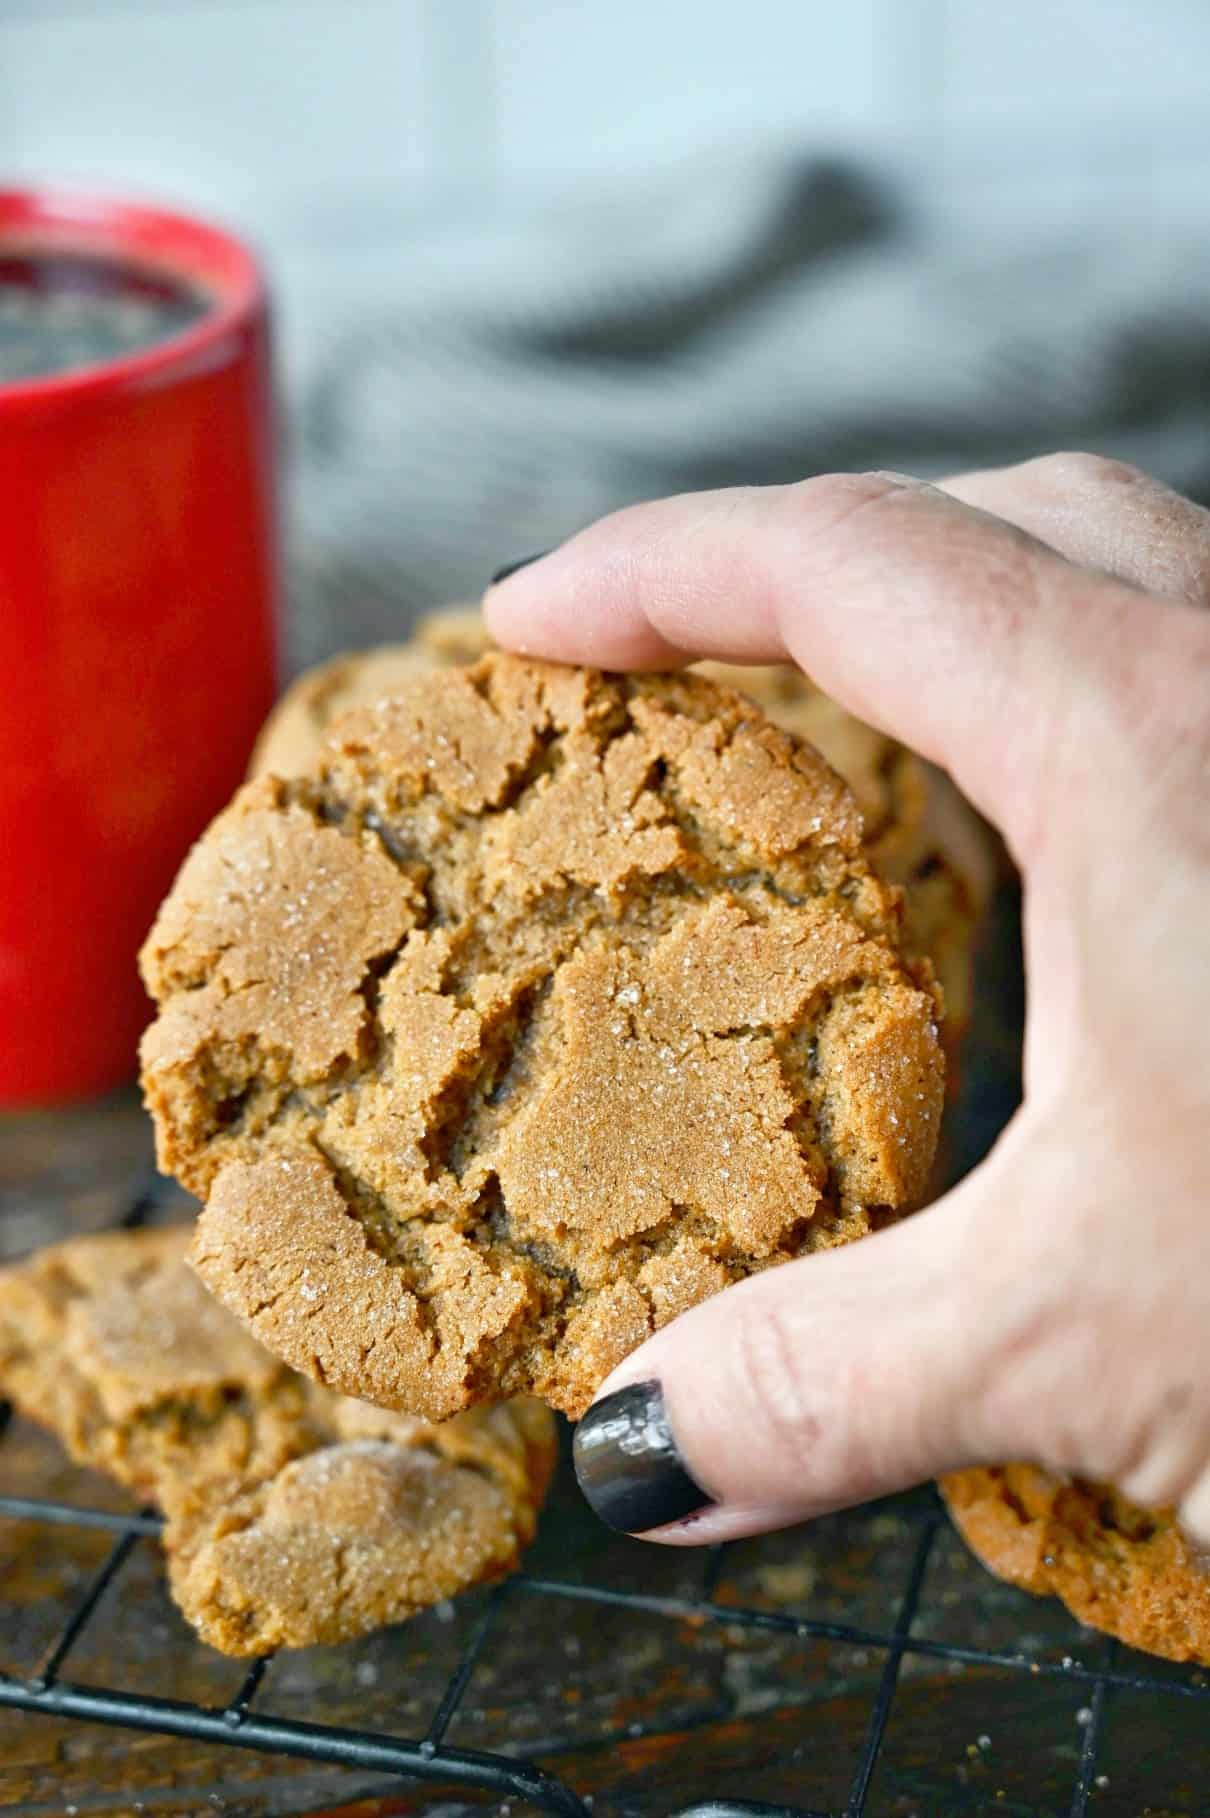 Ginger snap cookie being held in a hand.